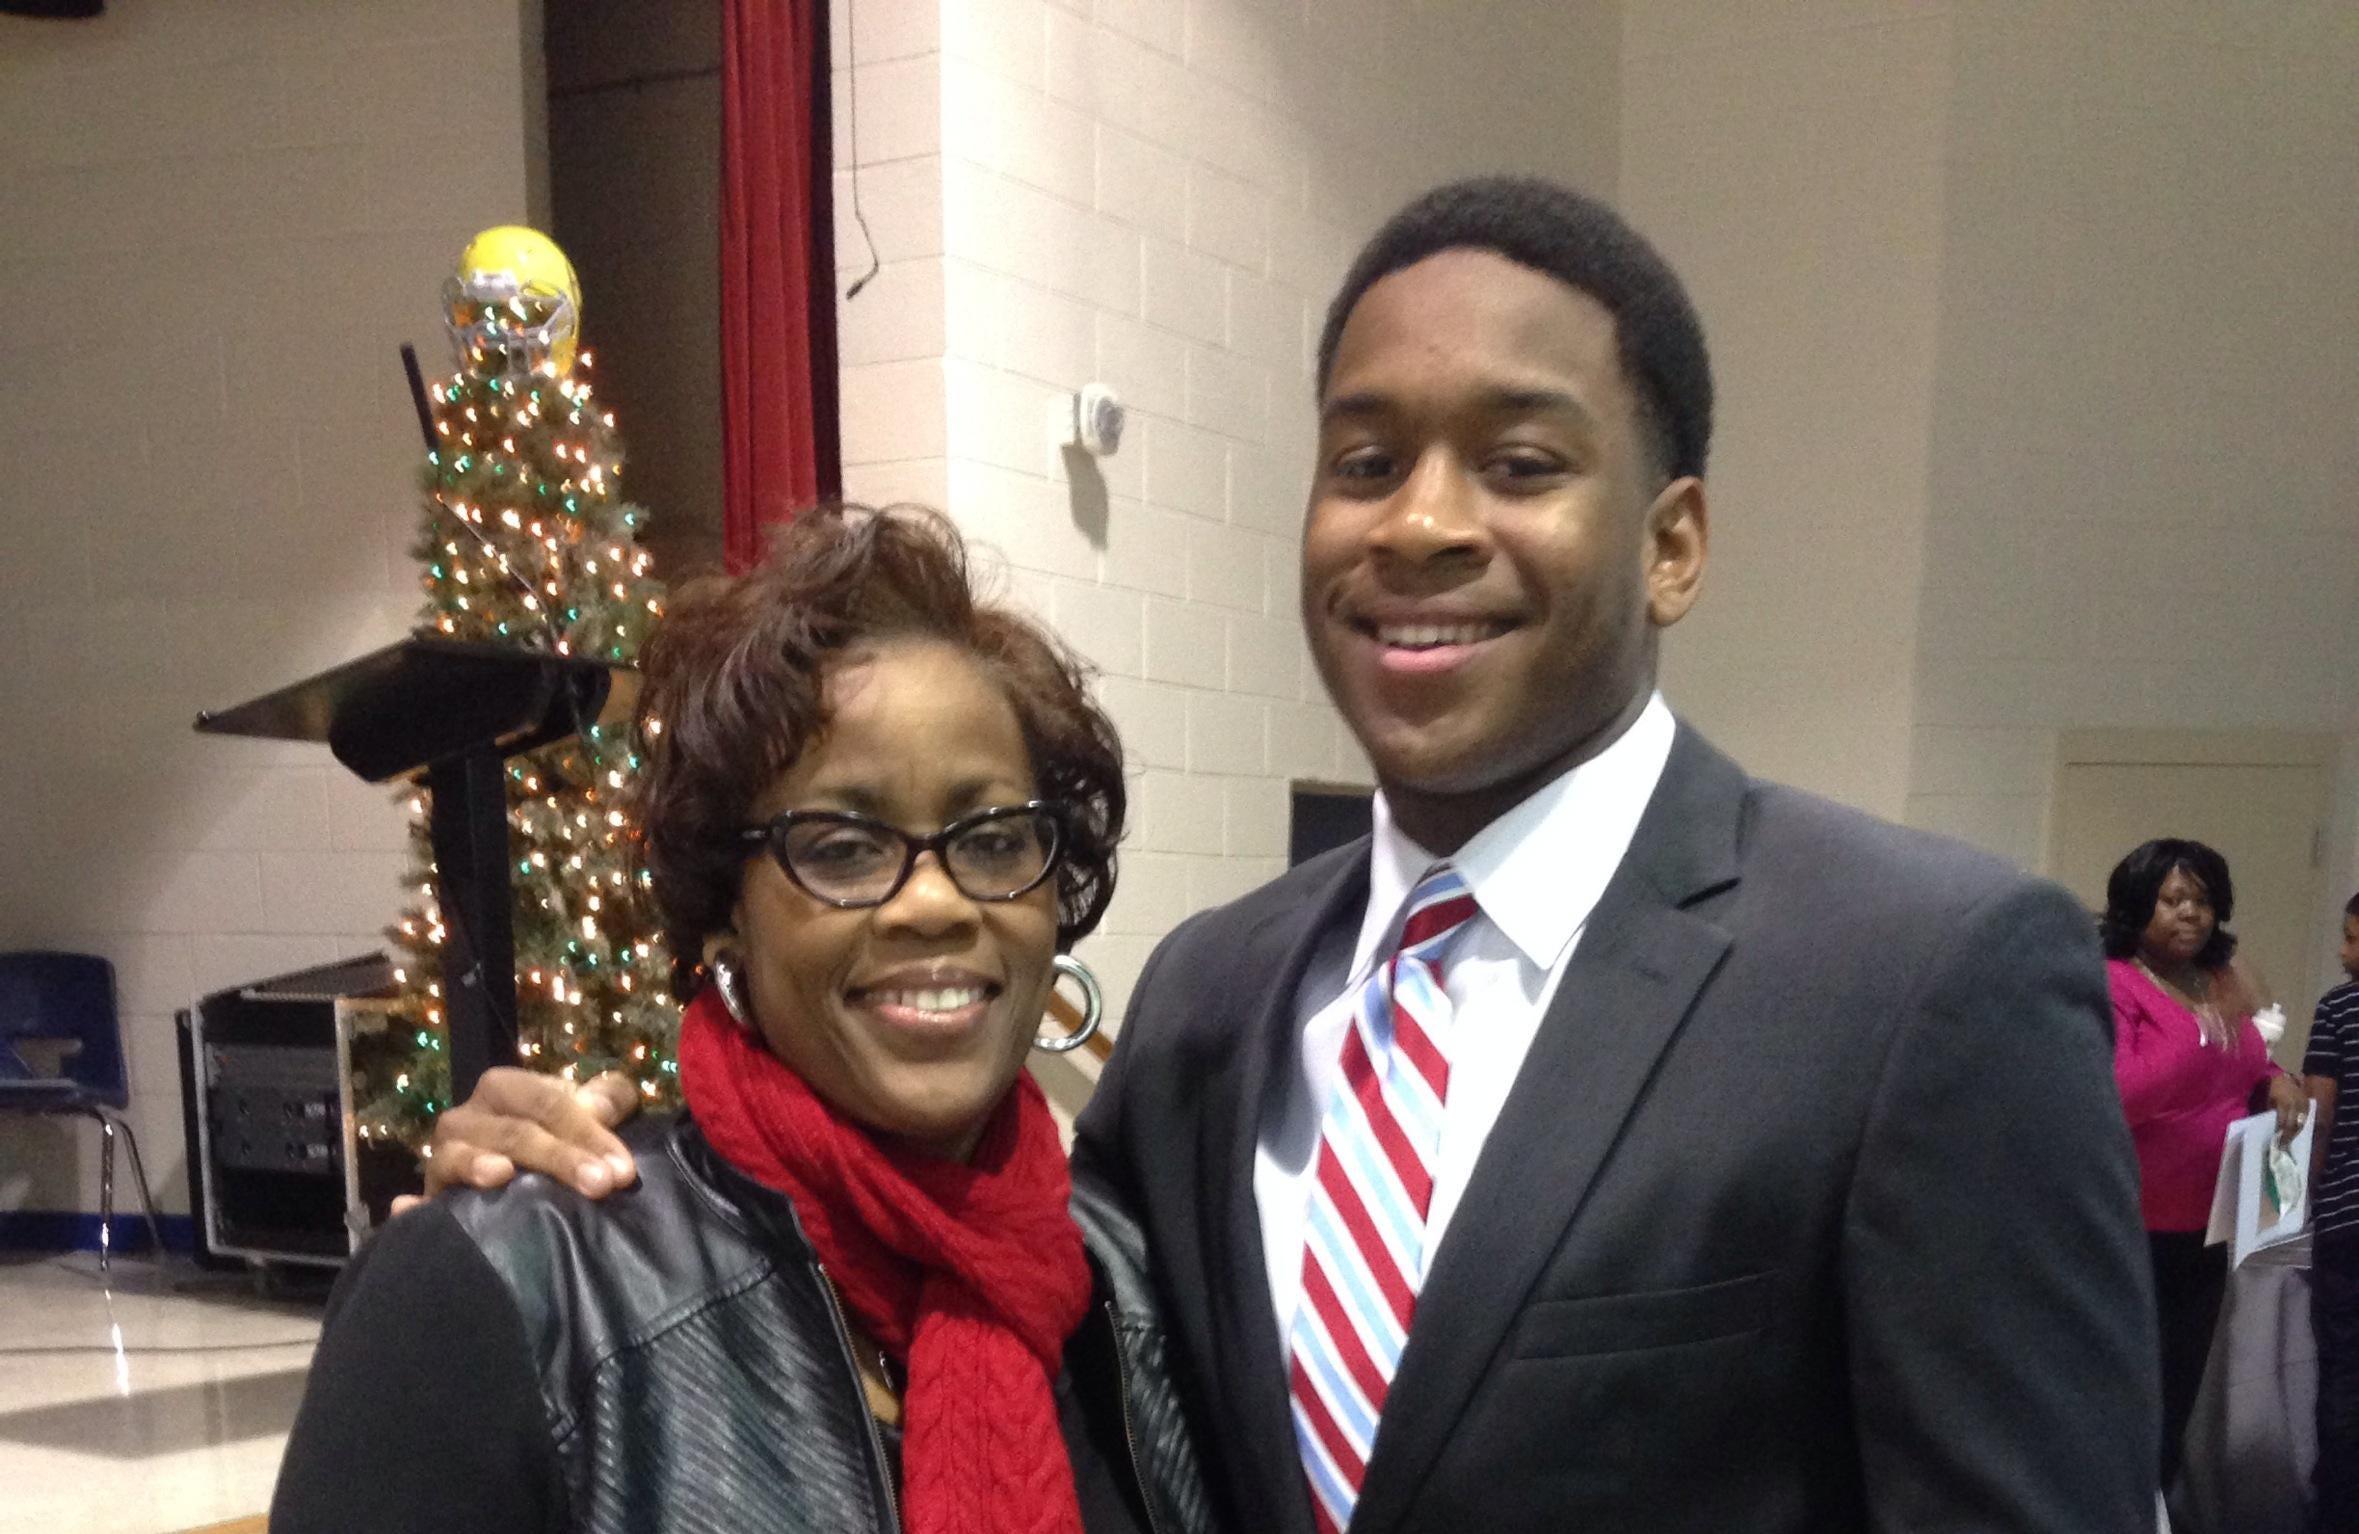 Kyle Phillips is the son of Tennessee State athletics director Teresa Phillips.